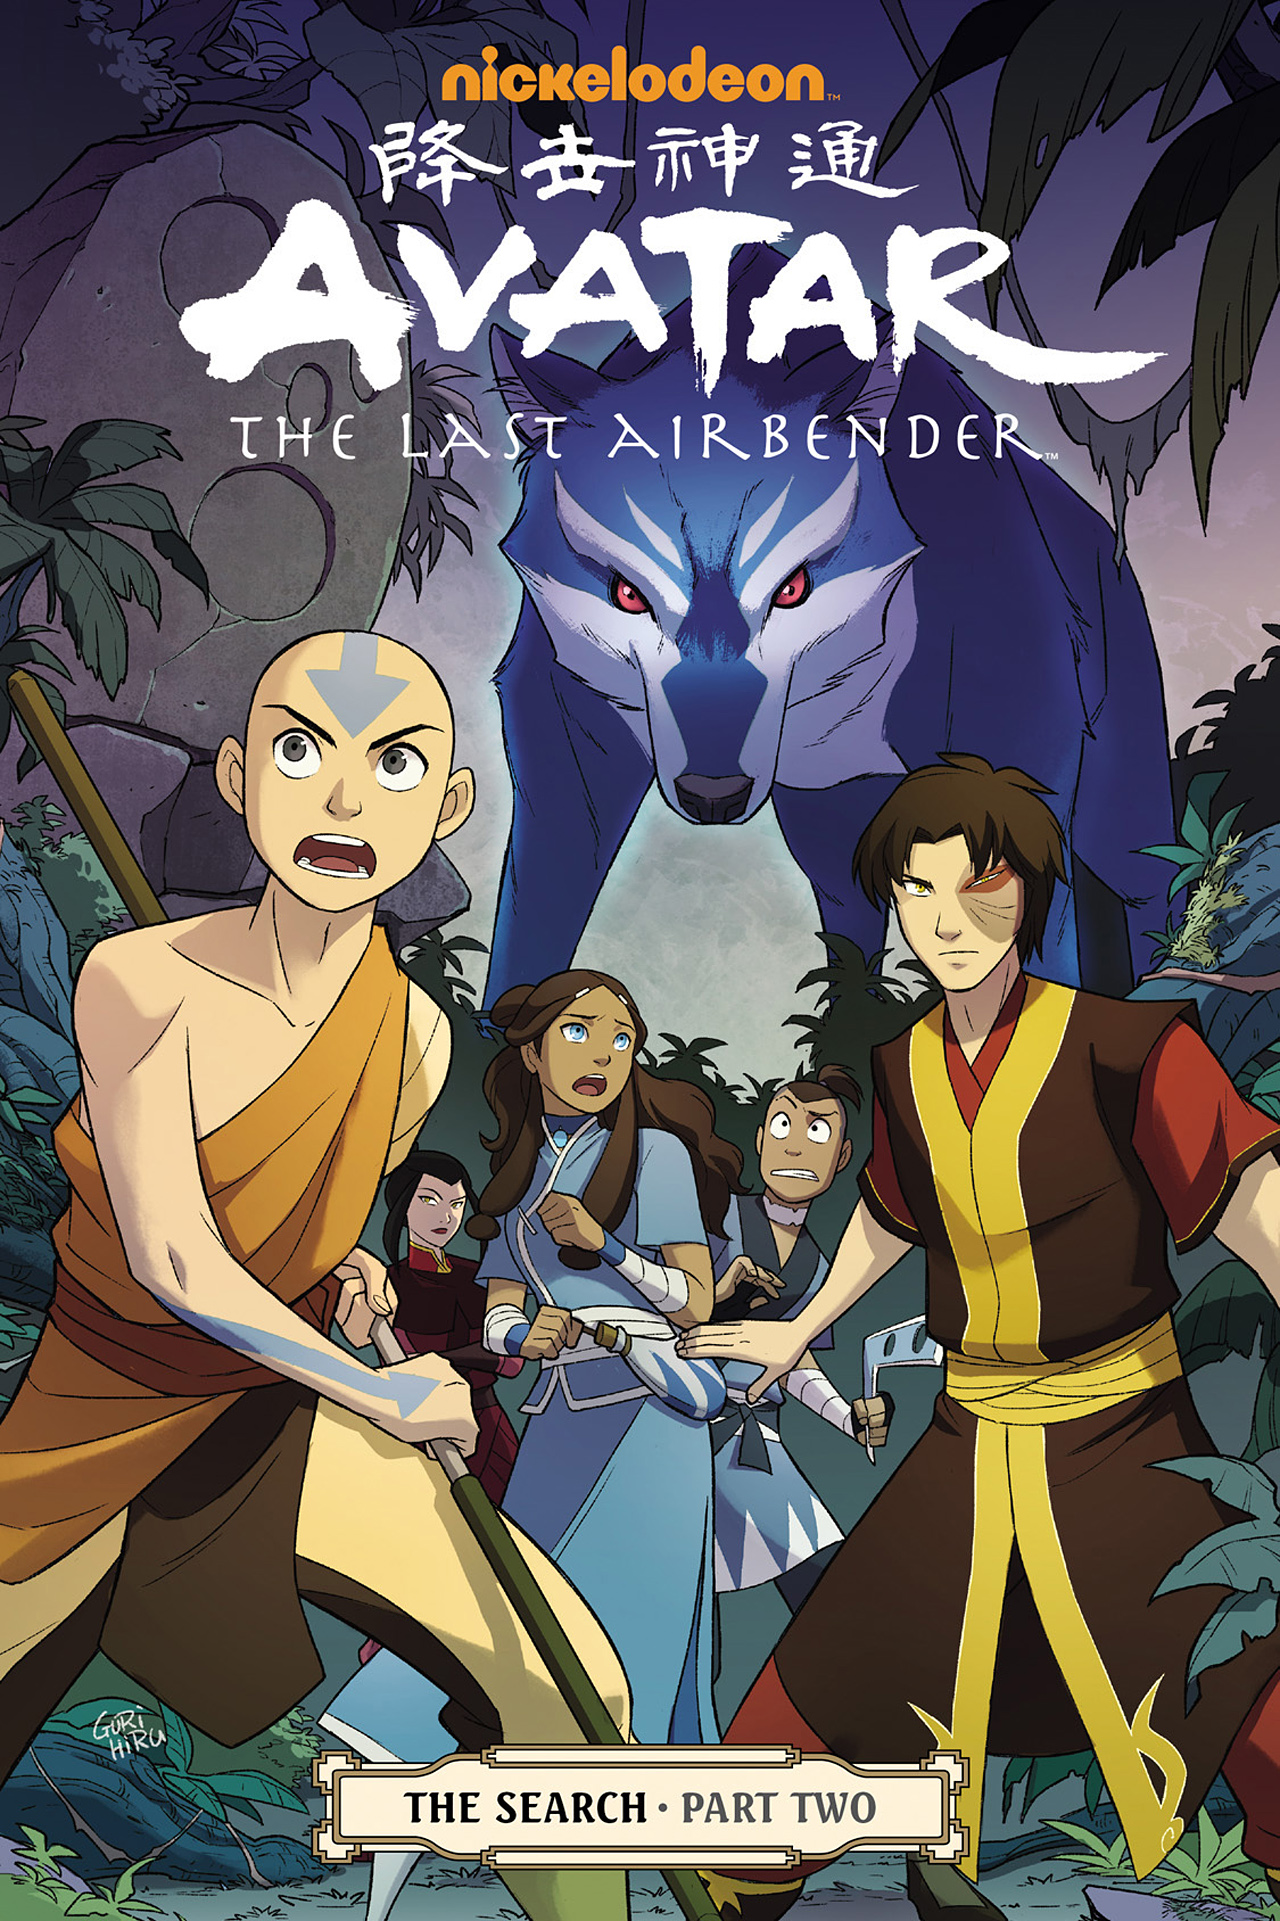 Read online Nickelodeon Avatar: The Last Airbender - The Search comic -  Issue # Part 2 - 1